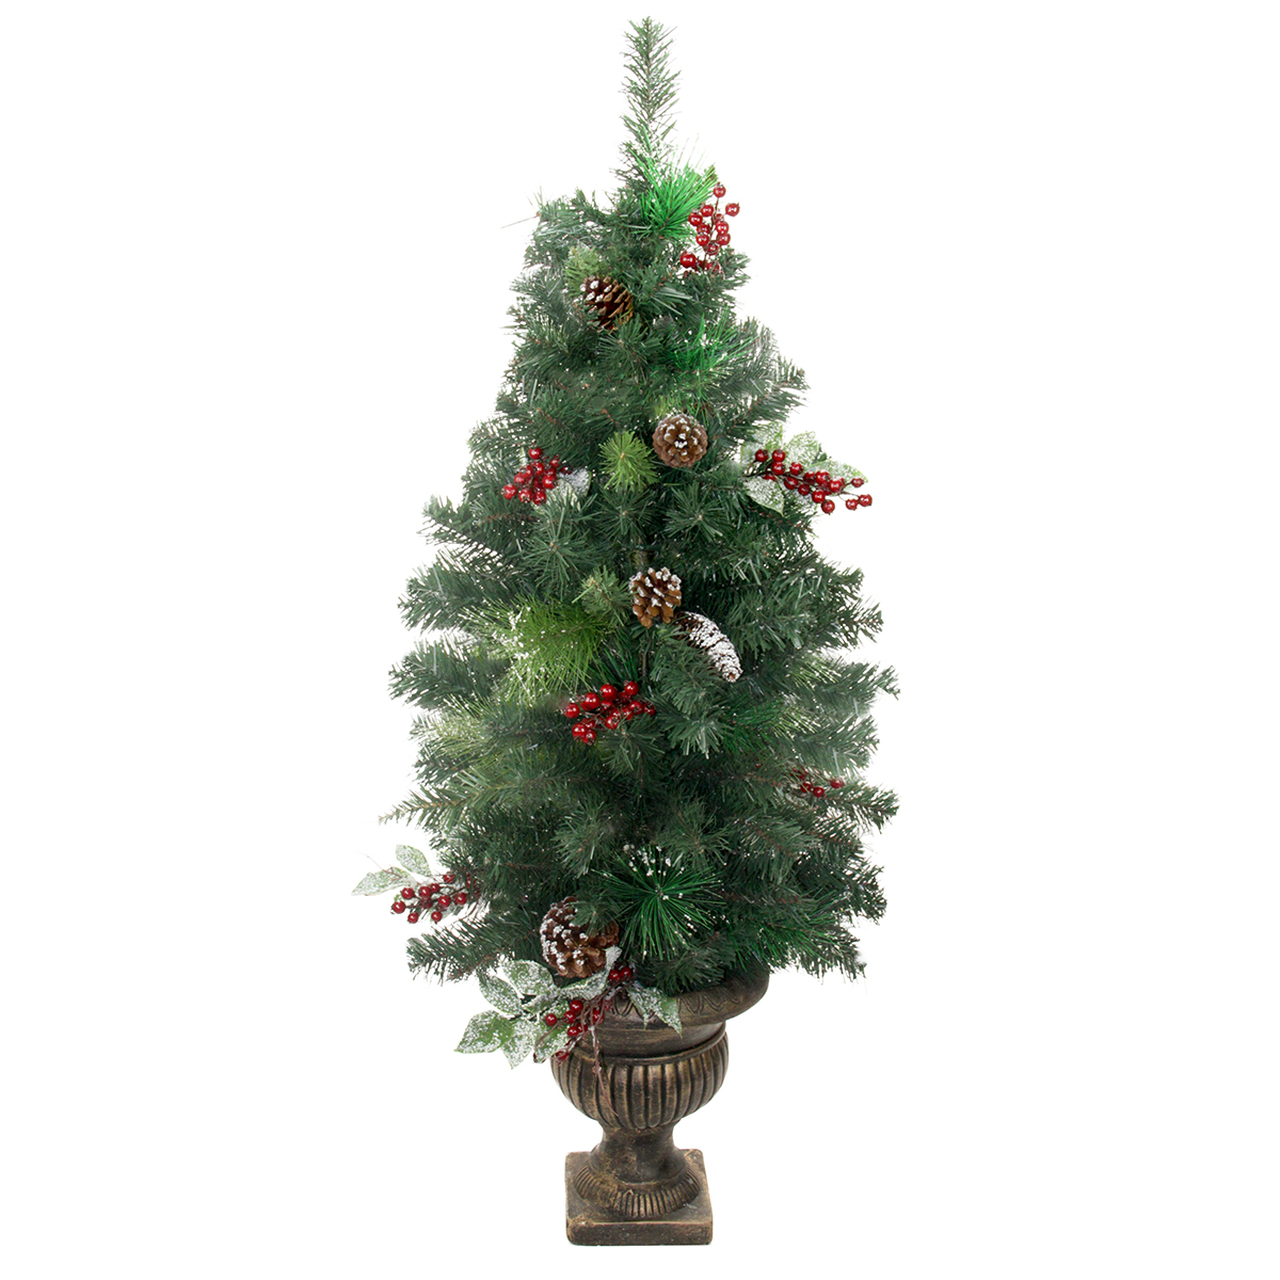 4 potted pre decorated frosted pine cone berry and twig artificial christmas tree unlit 31453837 - Pre Decorated Artificial Christmas Trees